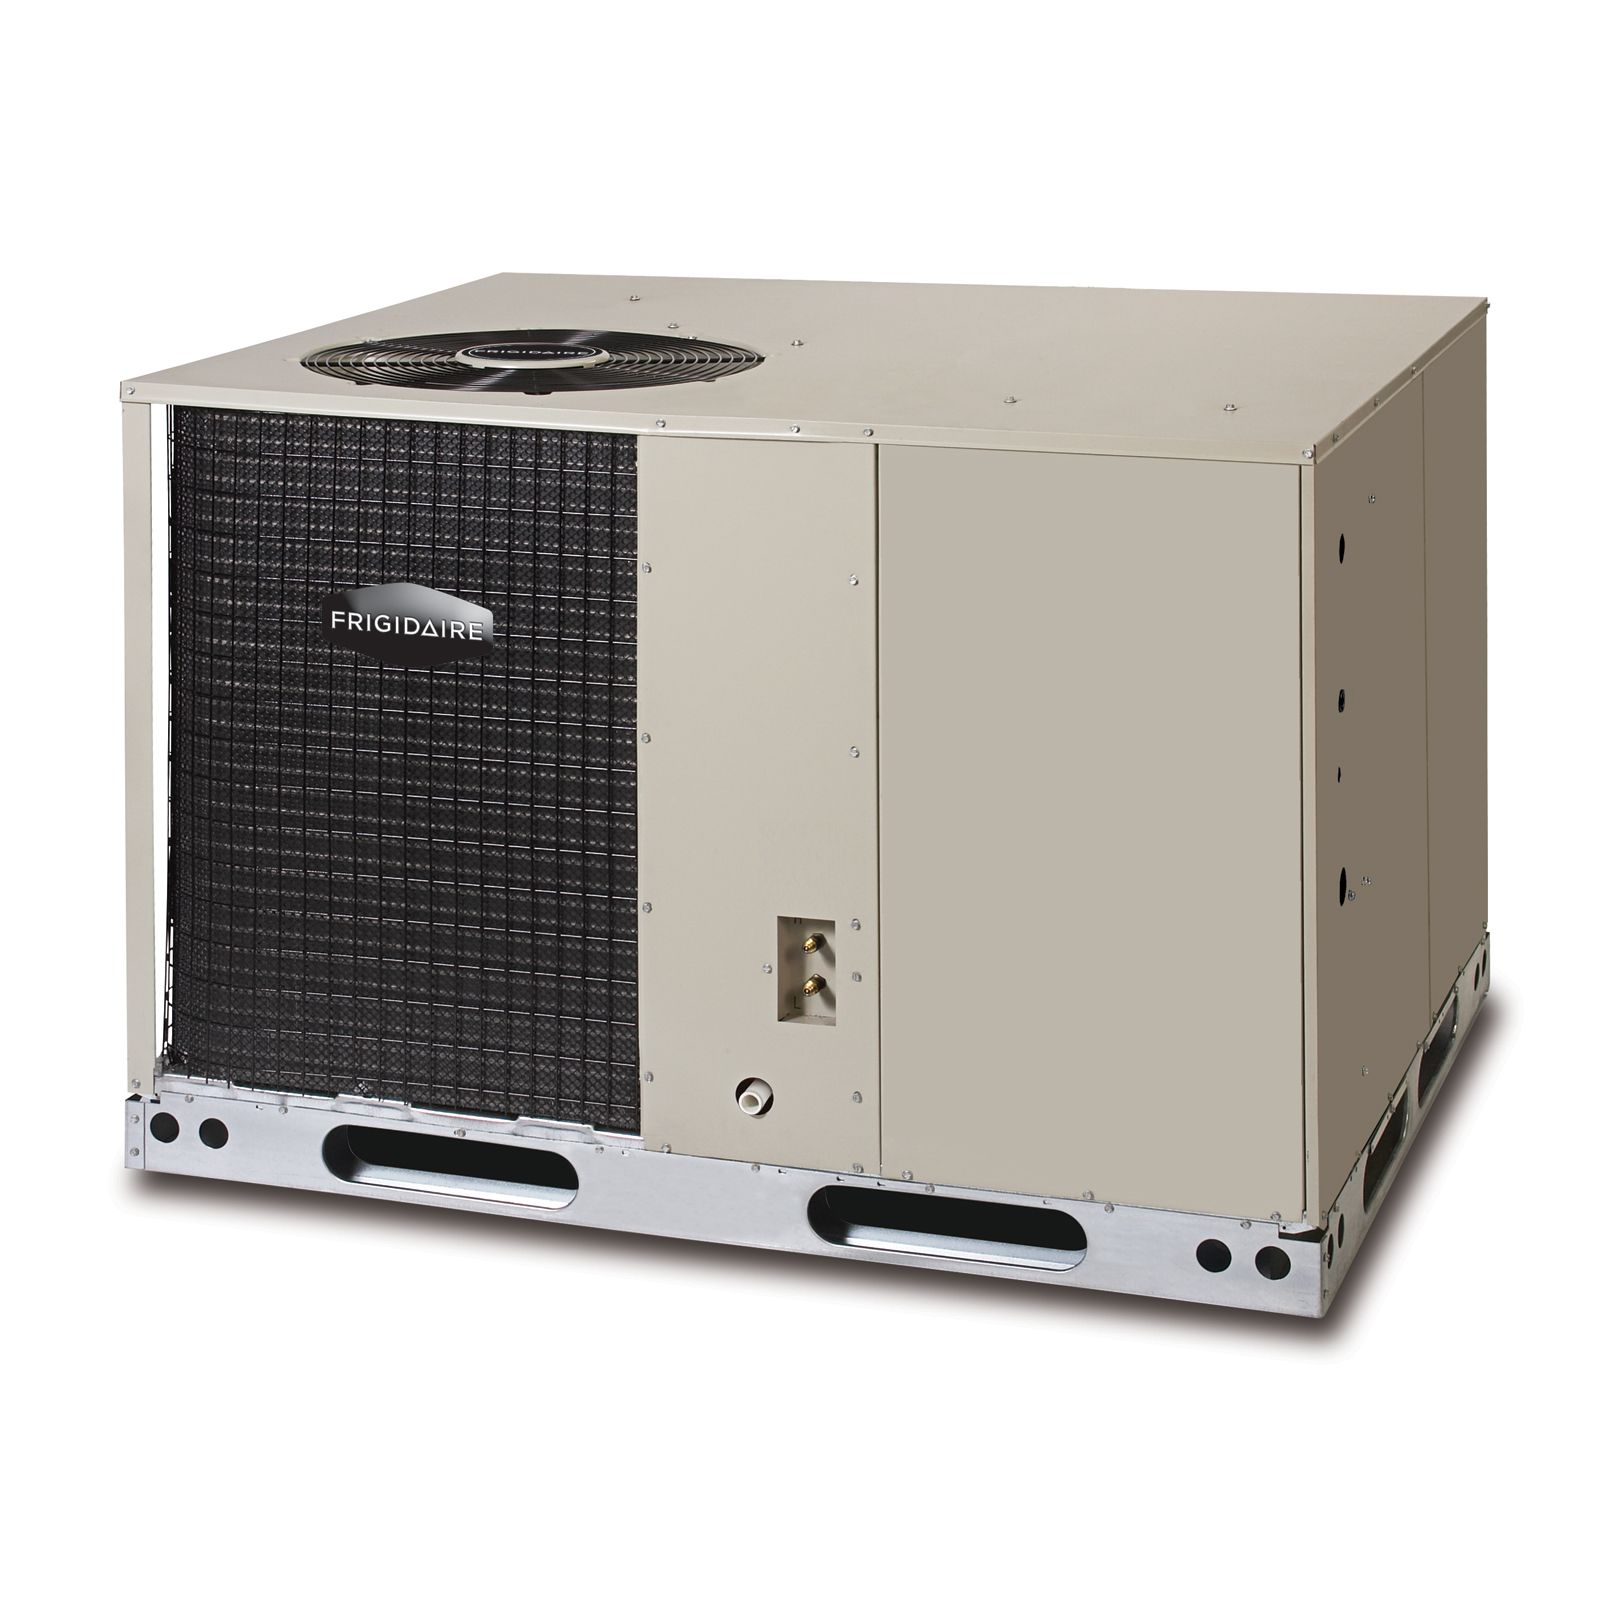 Frigidaire 922005 - Q7RE024K (AHRI 7617170) 2 Ton 14 SEER, Single Packaged Heat Pump, R410A, Single Phase